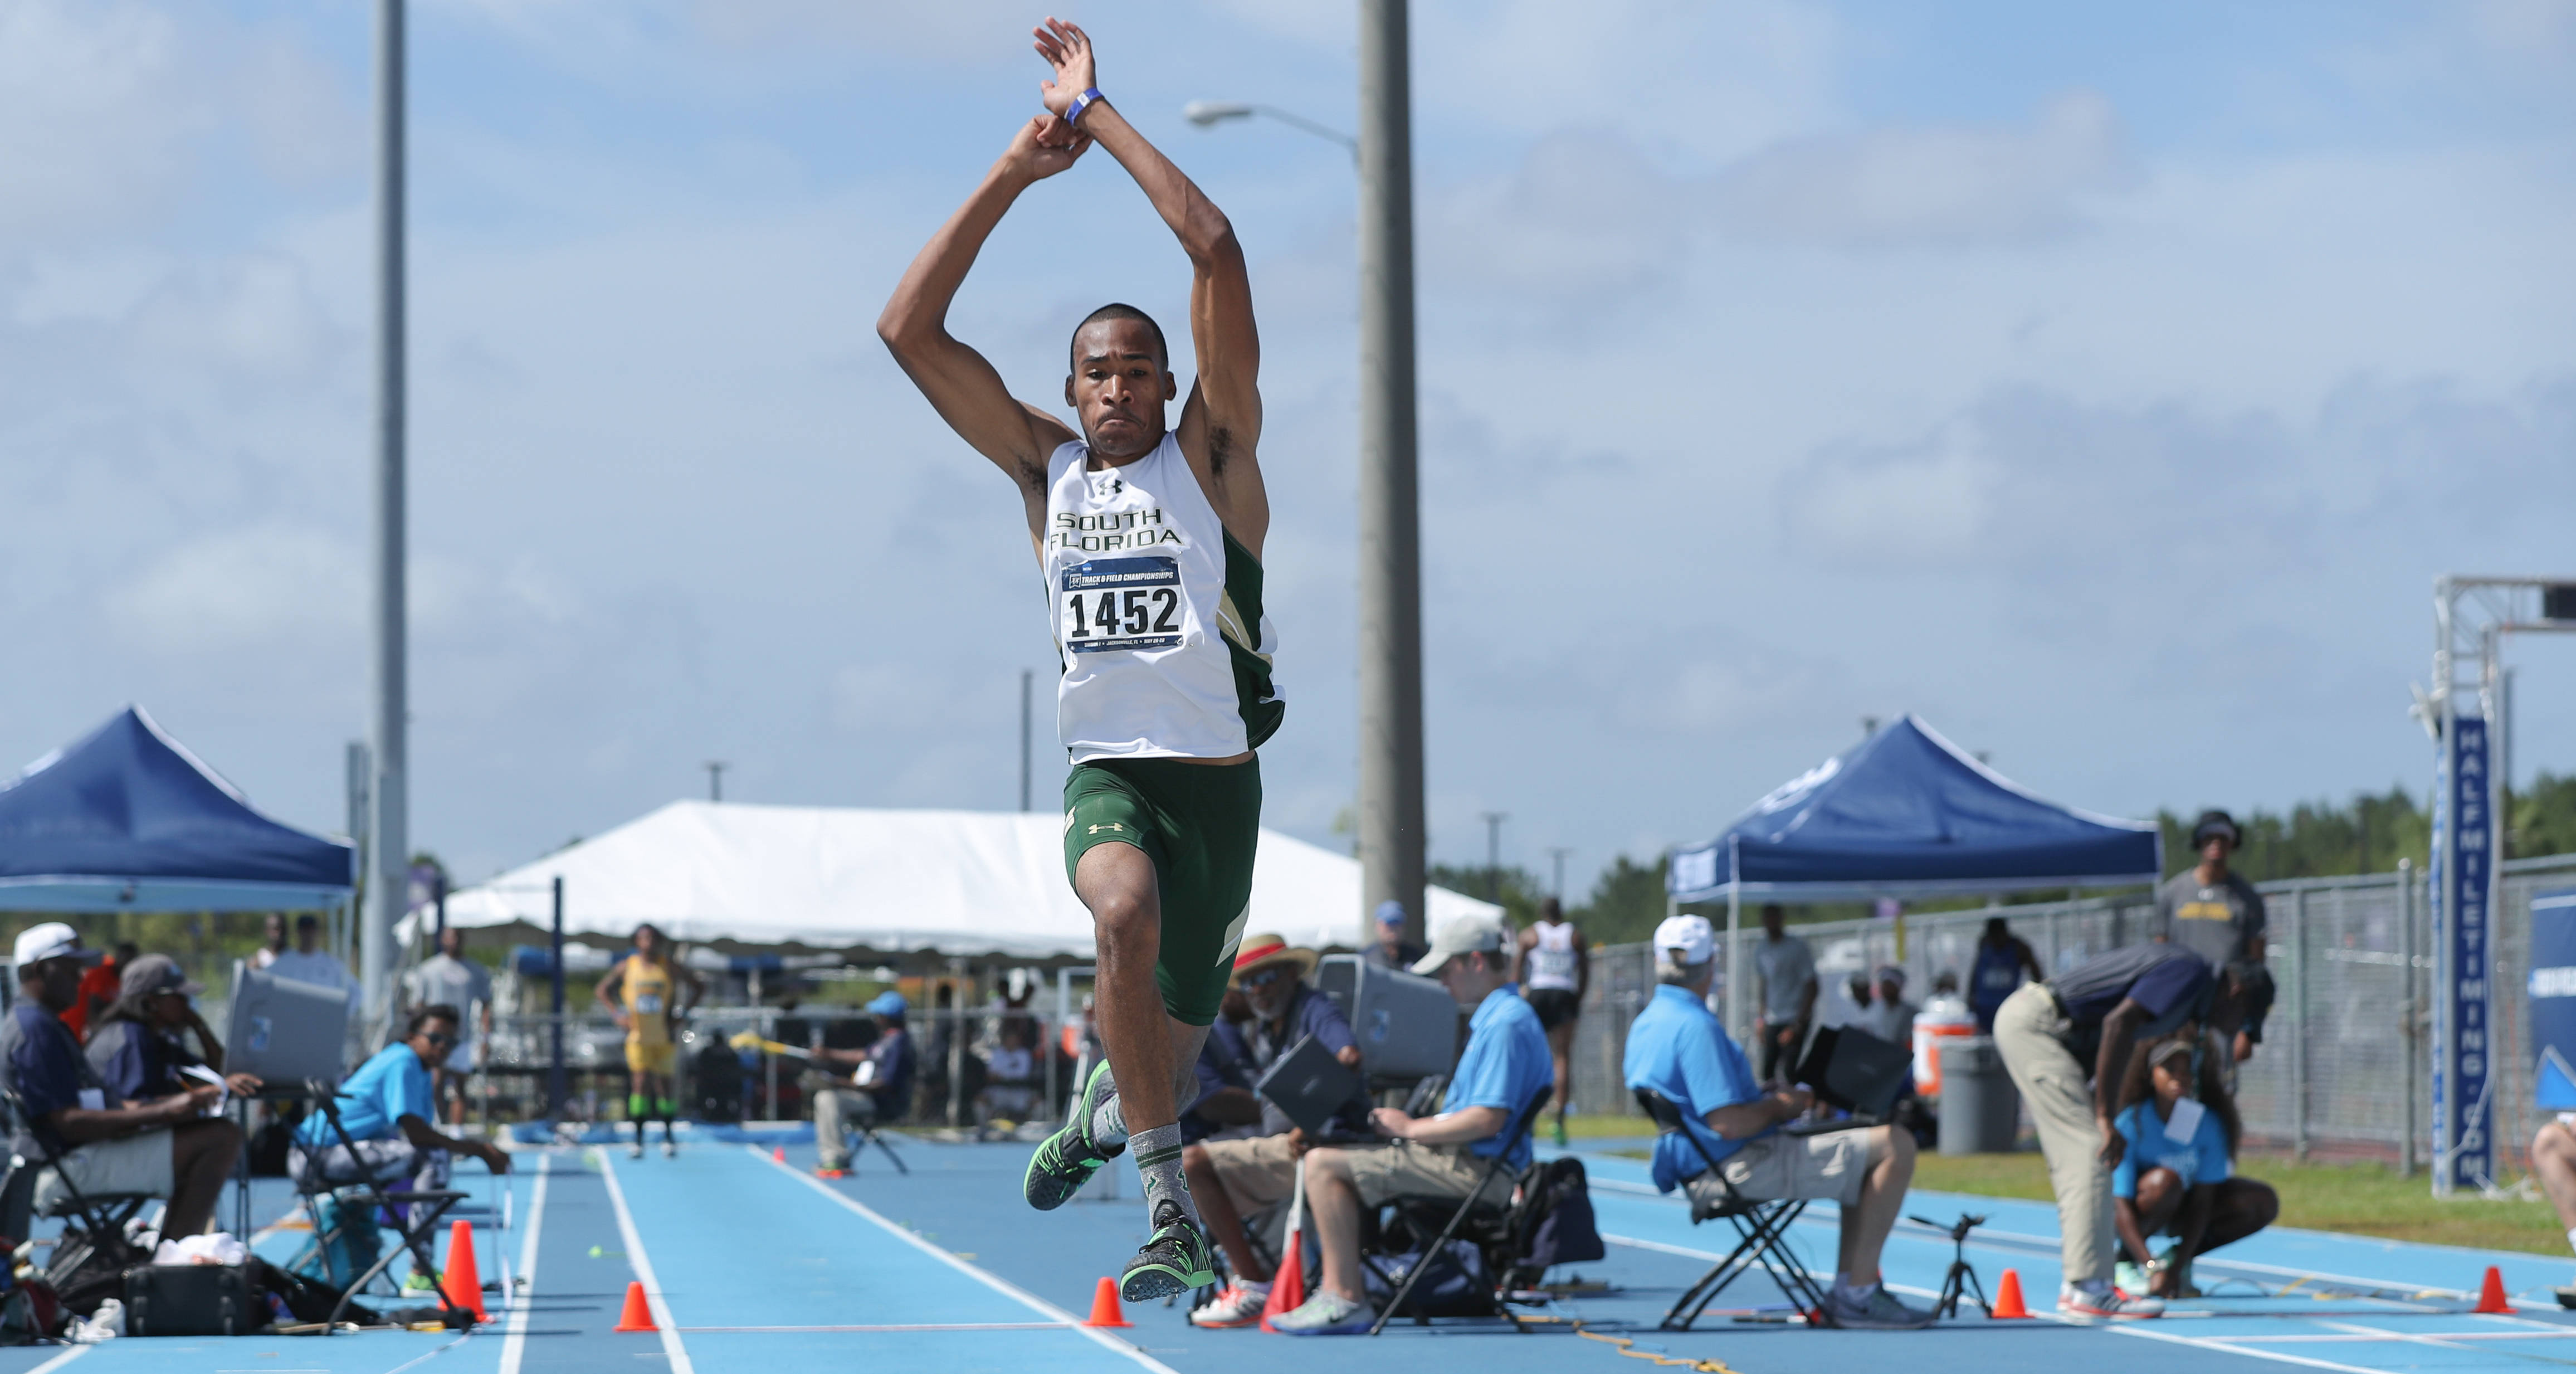 Matthew O'Neal will have the opportunity to compete at the NCAA Championships on June 10th in Eugene, OR.